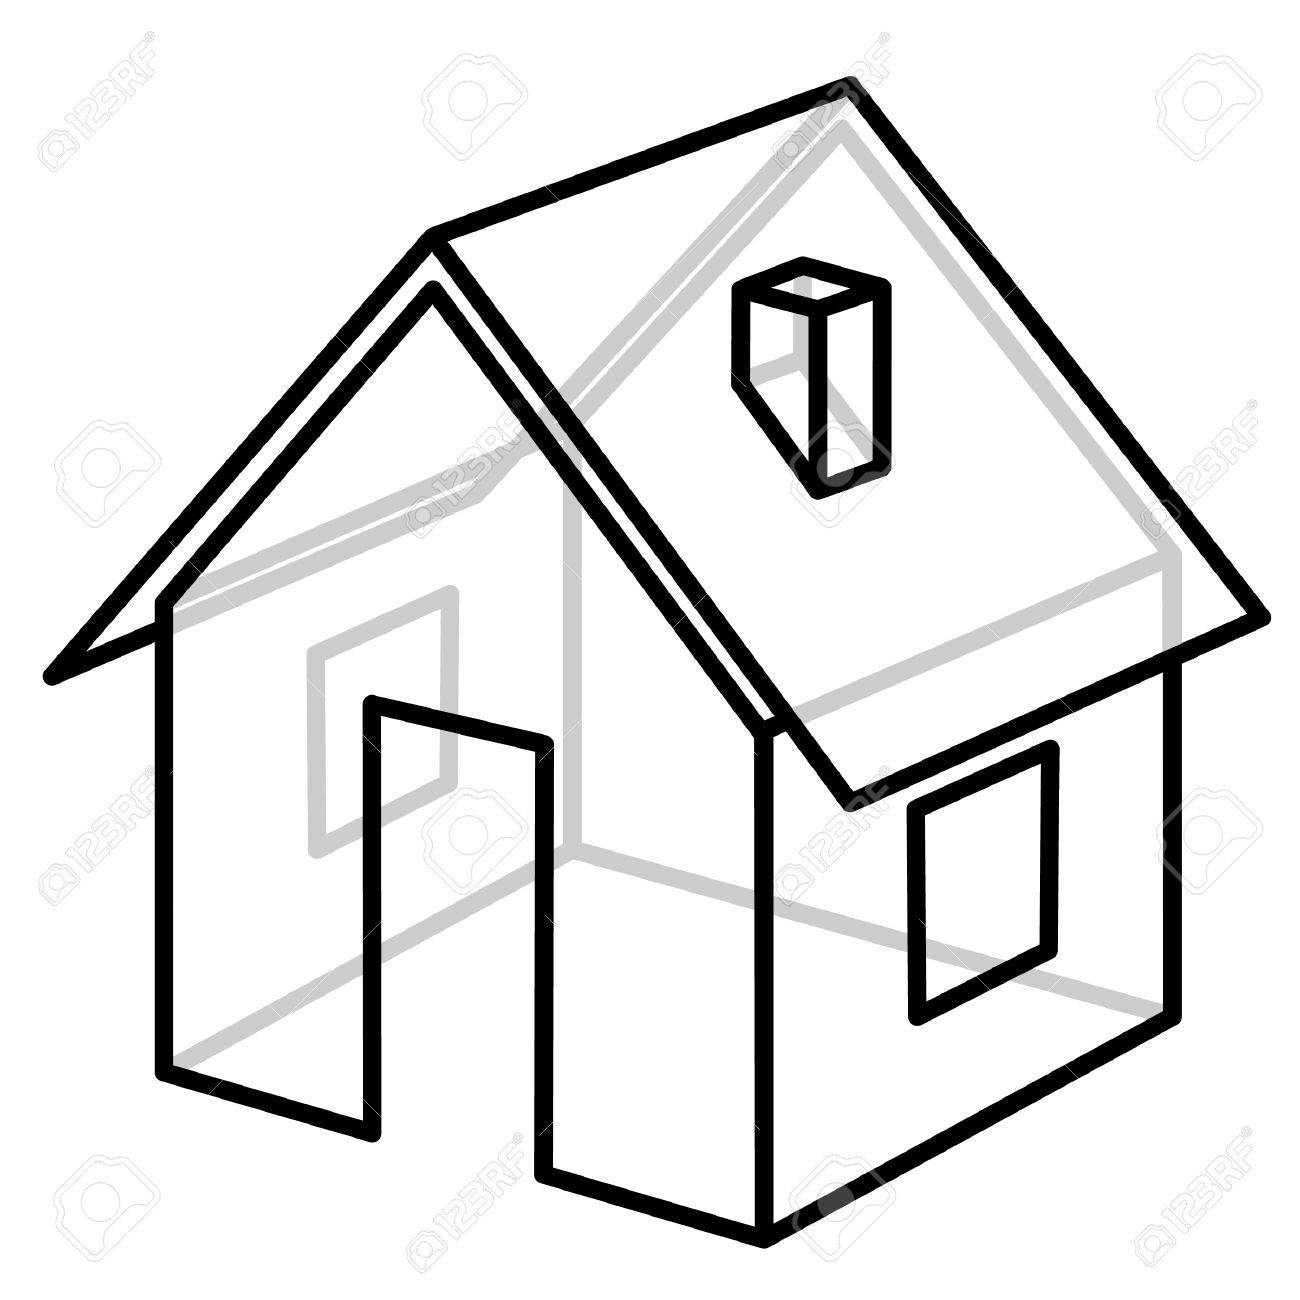 house wire frame model vector illustration stock photo picture House Clip Art house wire frame model vector illustration stock illustration 8919930